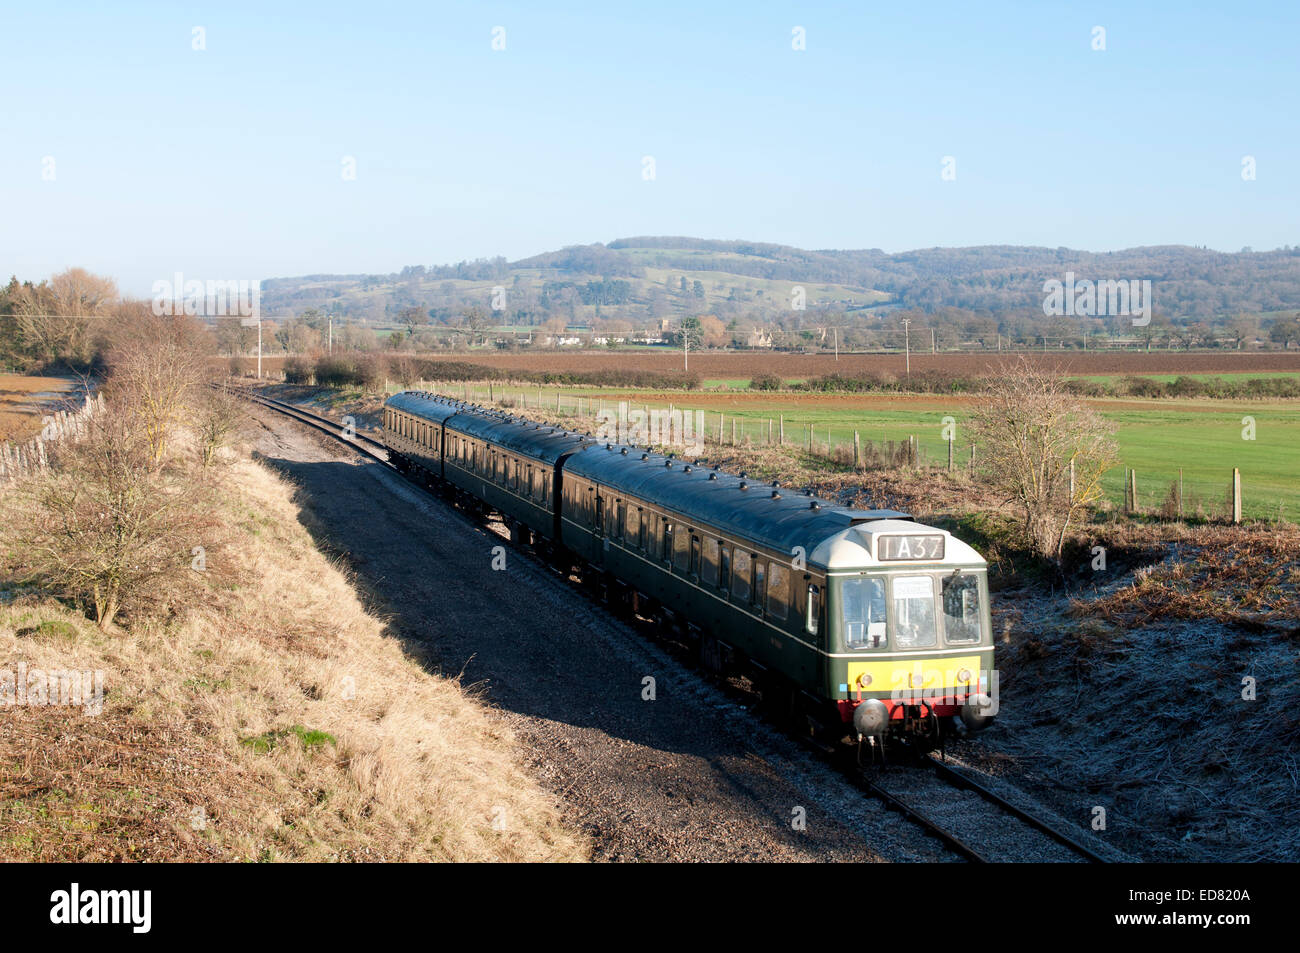 Diesel multiple-unit train on the Gloucestershire and Warwickshire Railway in winter, Hailes, Gloucestershire, UK - Stock Image